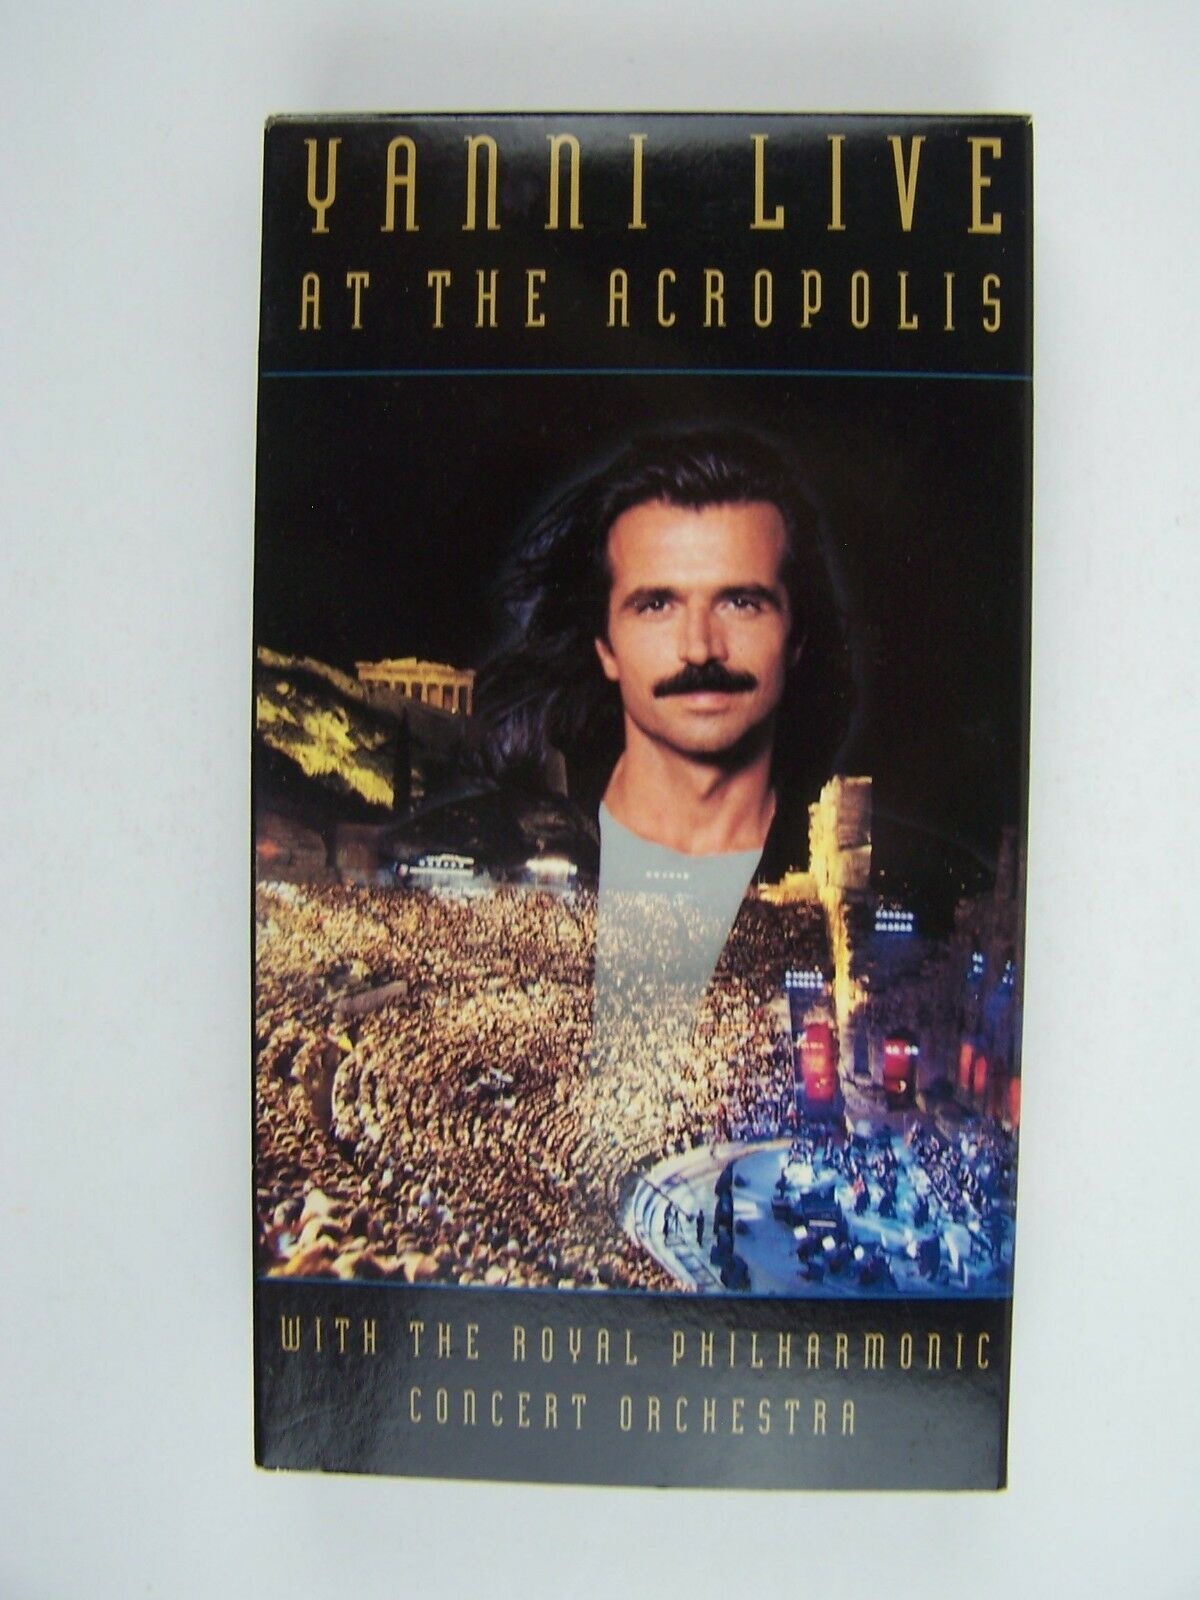 Yanni Live at the Acropolis VHS Video Tape